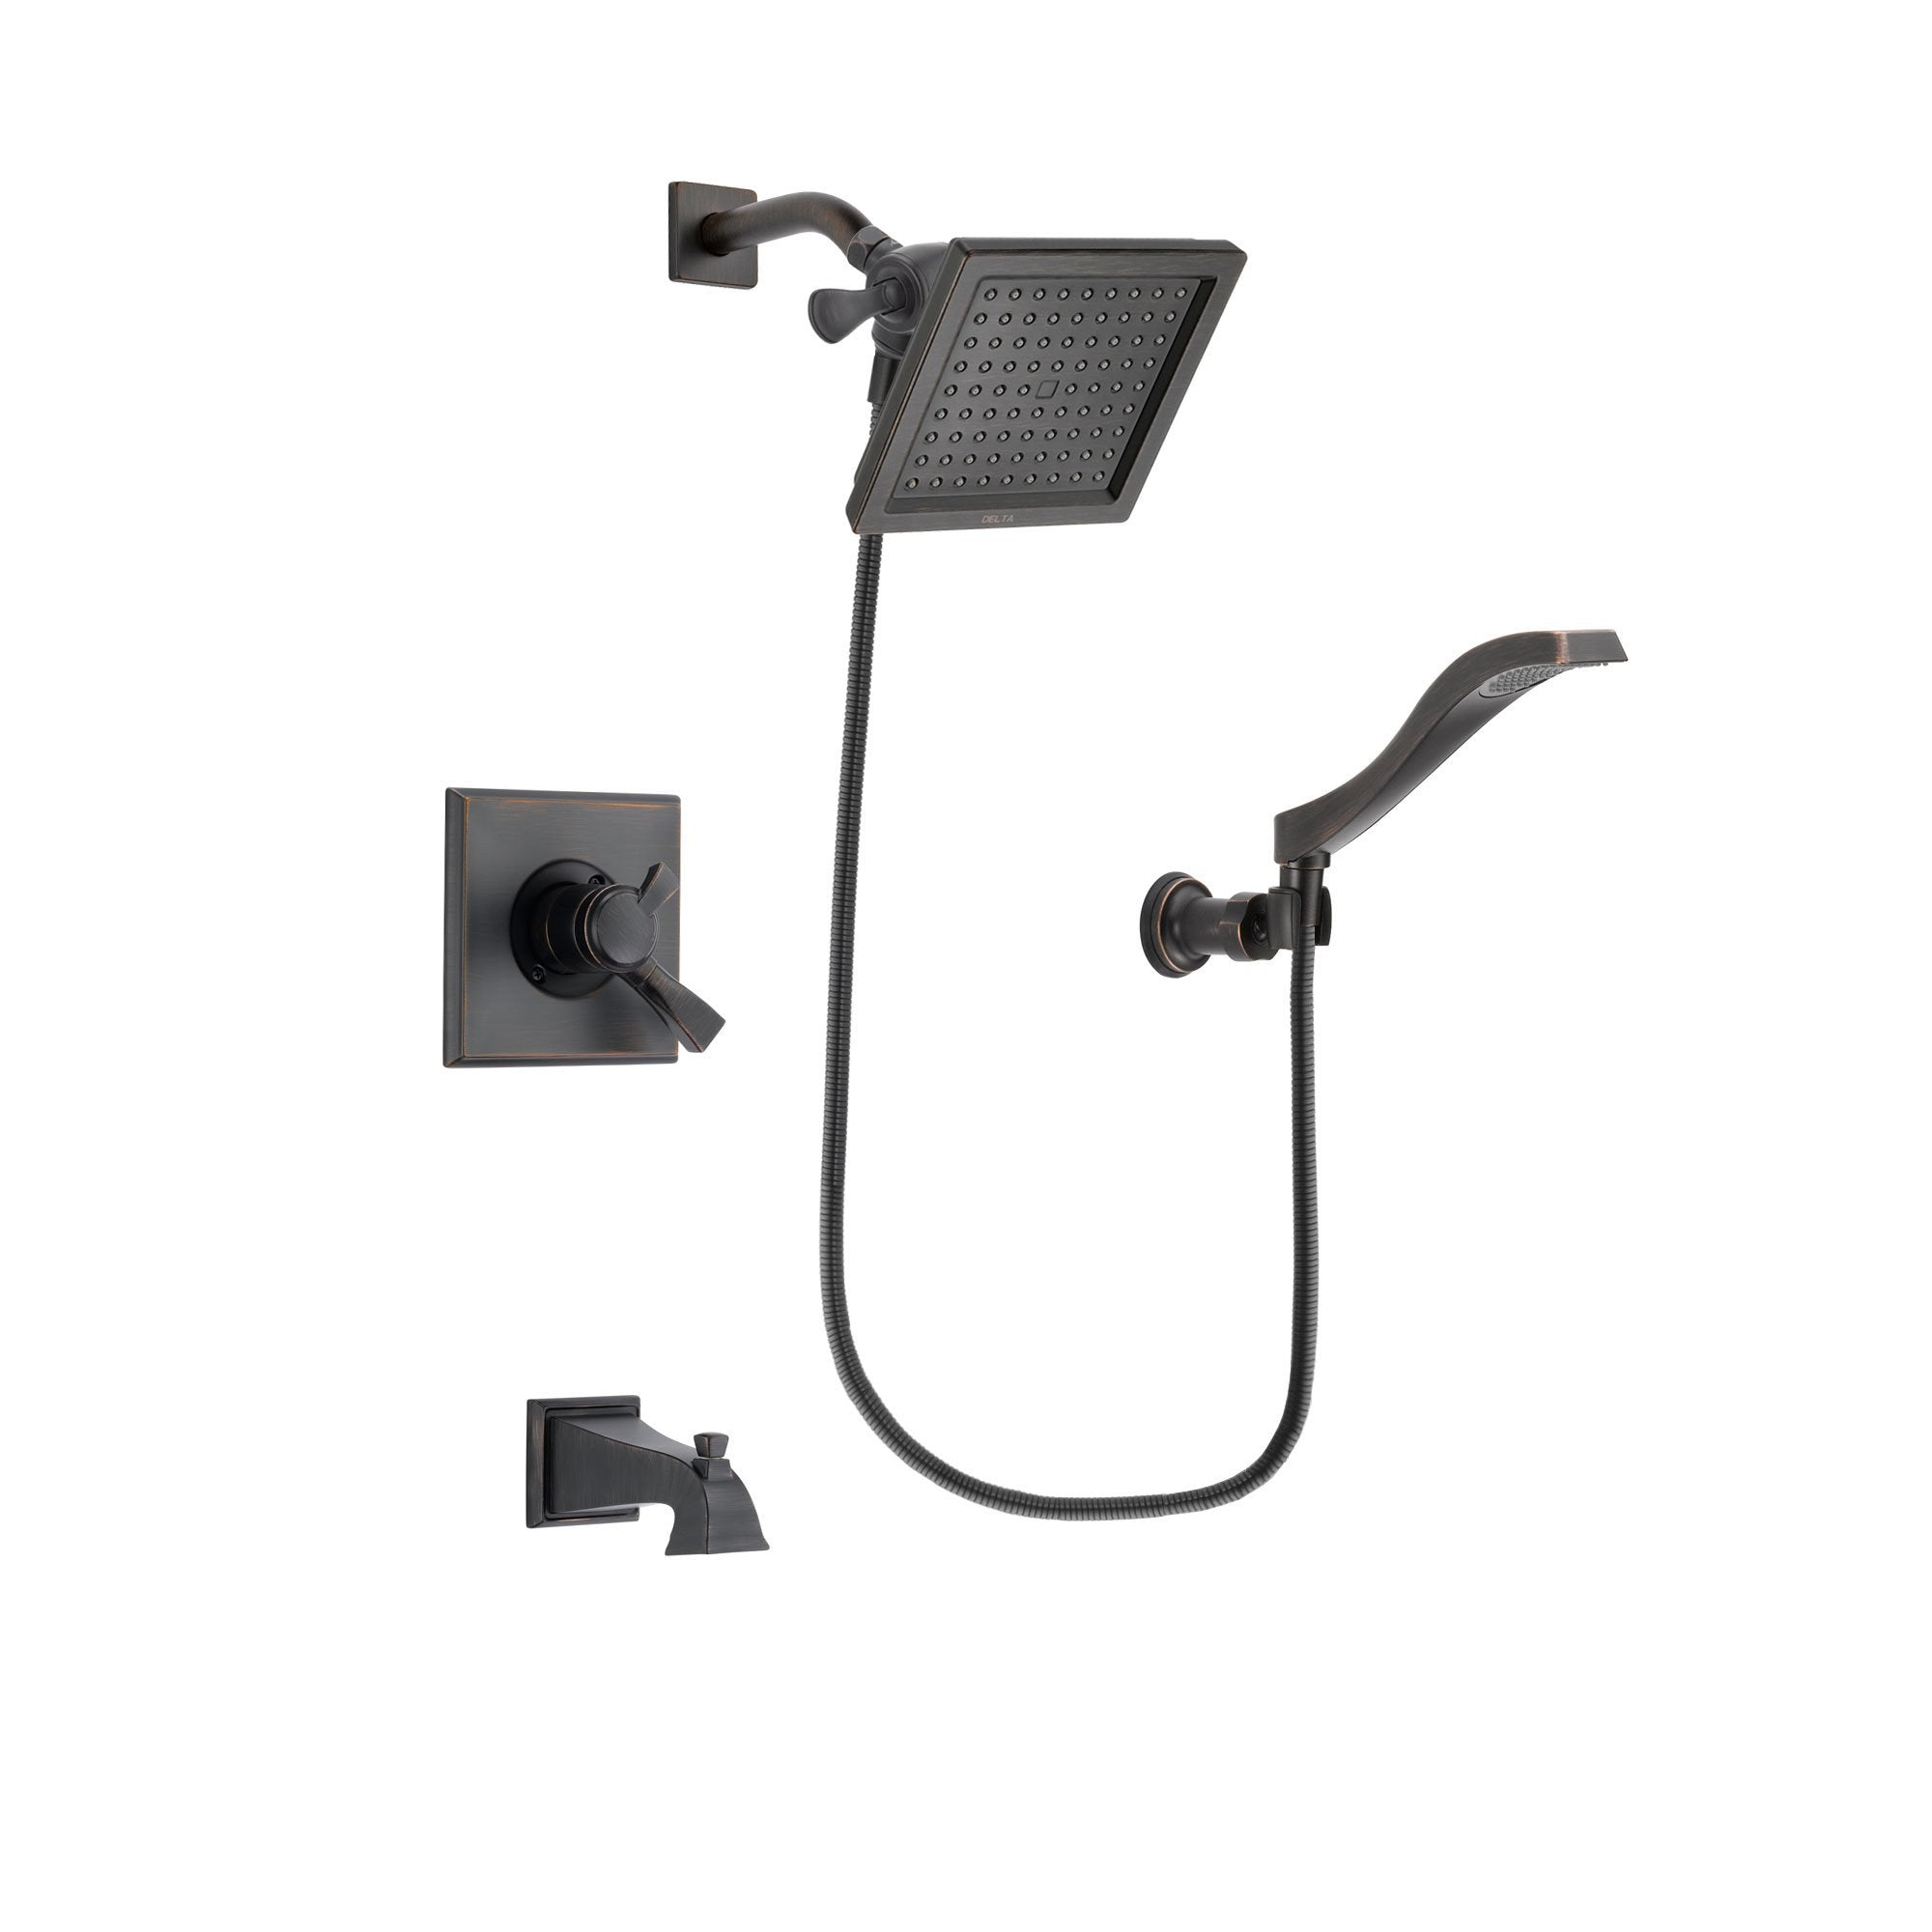 Delta Dryden Venetian Bronze Tub and Shower Faucet System w/Hand Shower DSP3229V